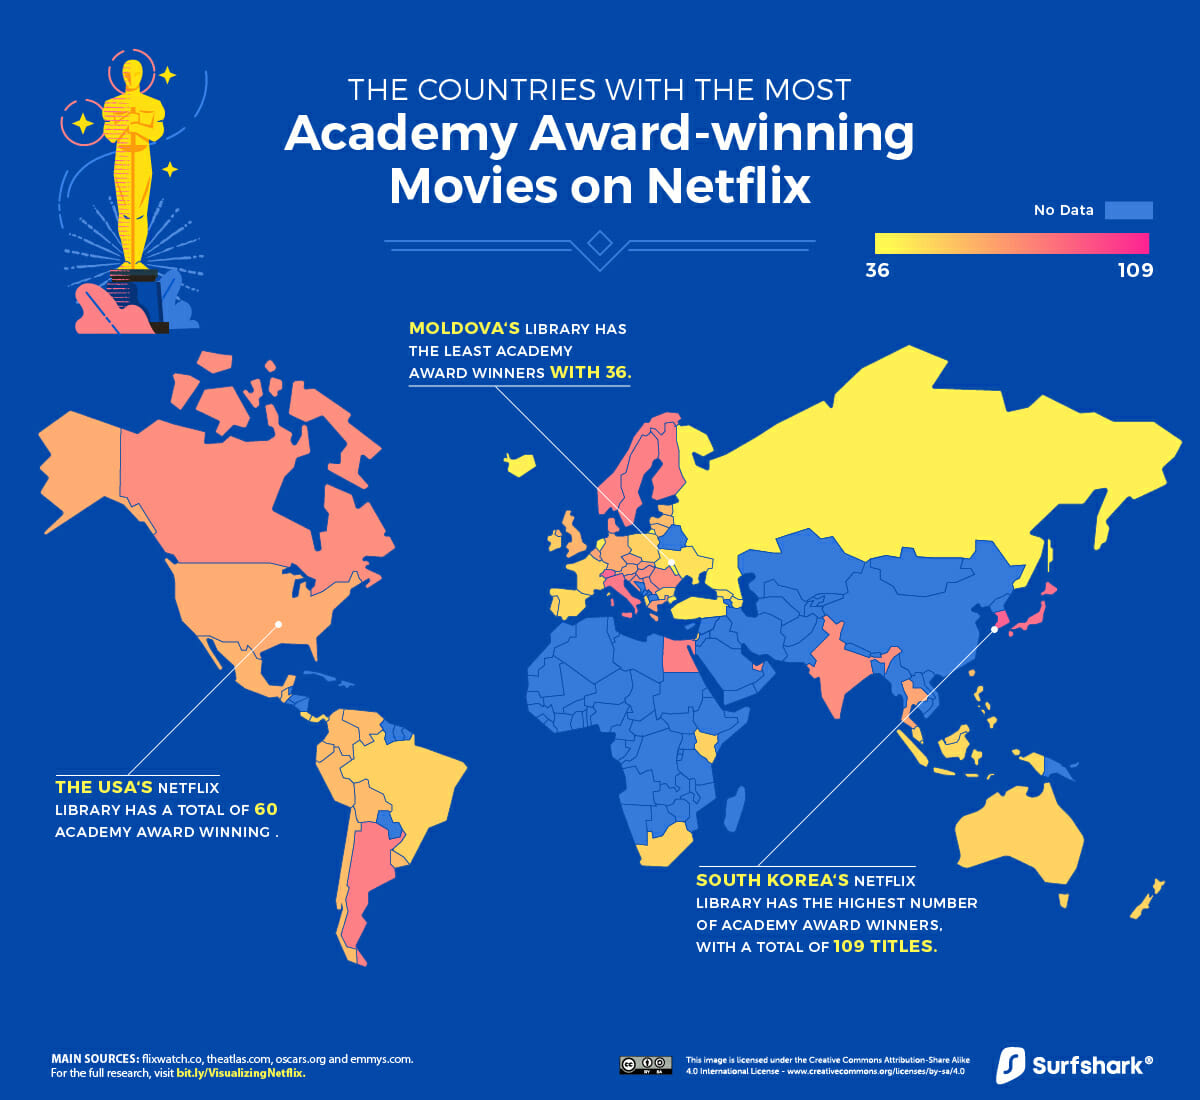 Countries with the Most Acadamy Award Winners on Netflix